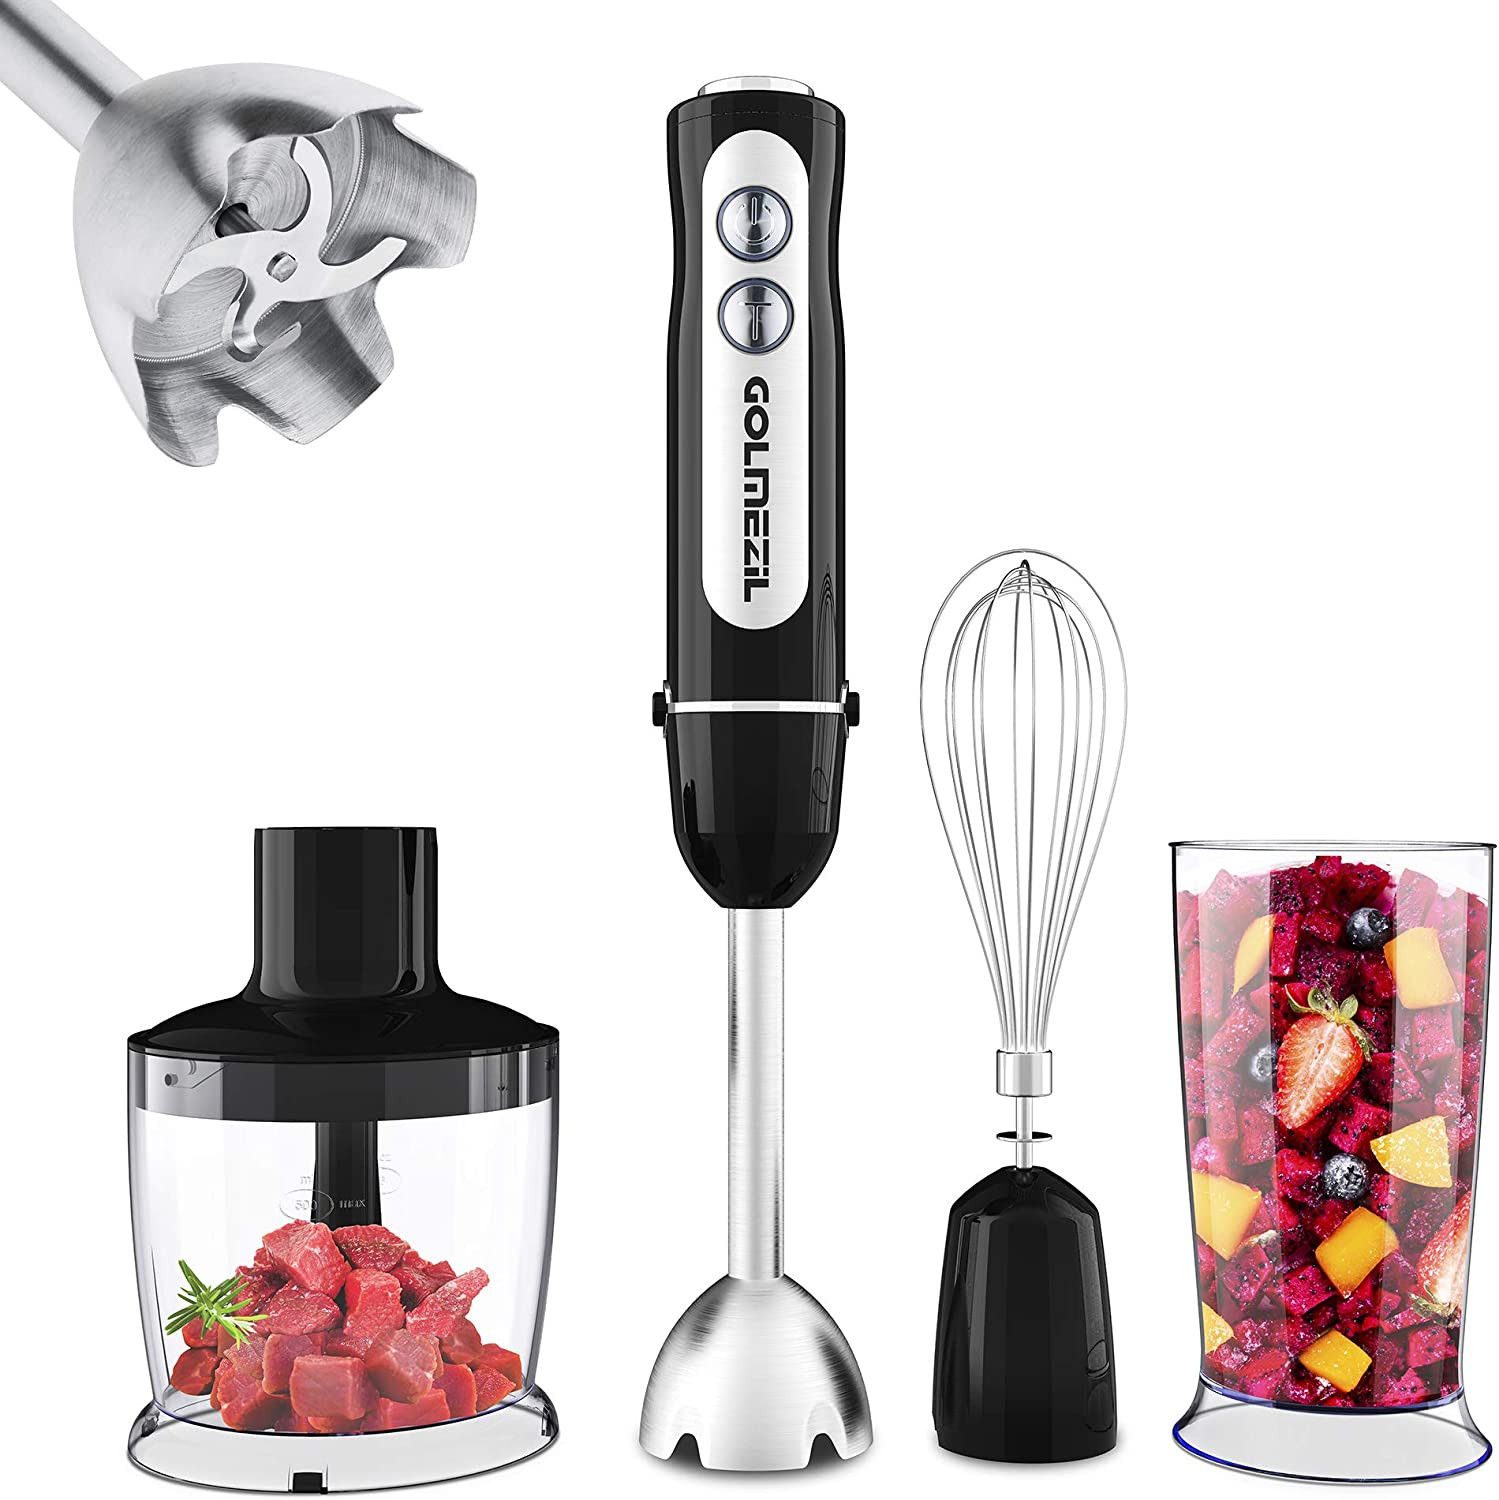 Immersion Hand Blender Max 1000W: Electric 4-in-1 Variable Speed Corded Handheld Stick Blenders with Attachments